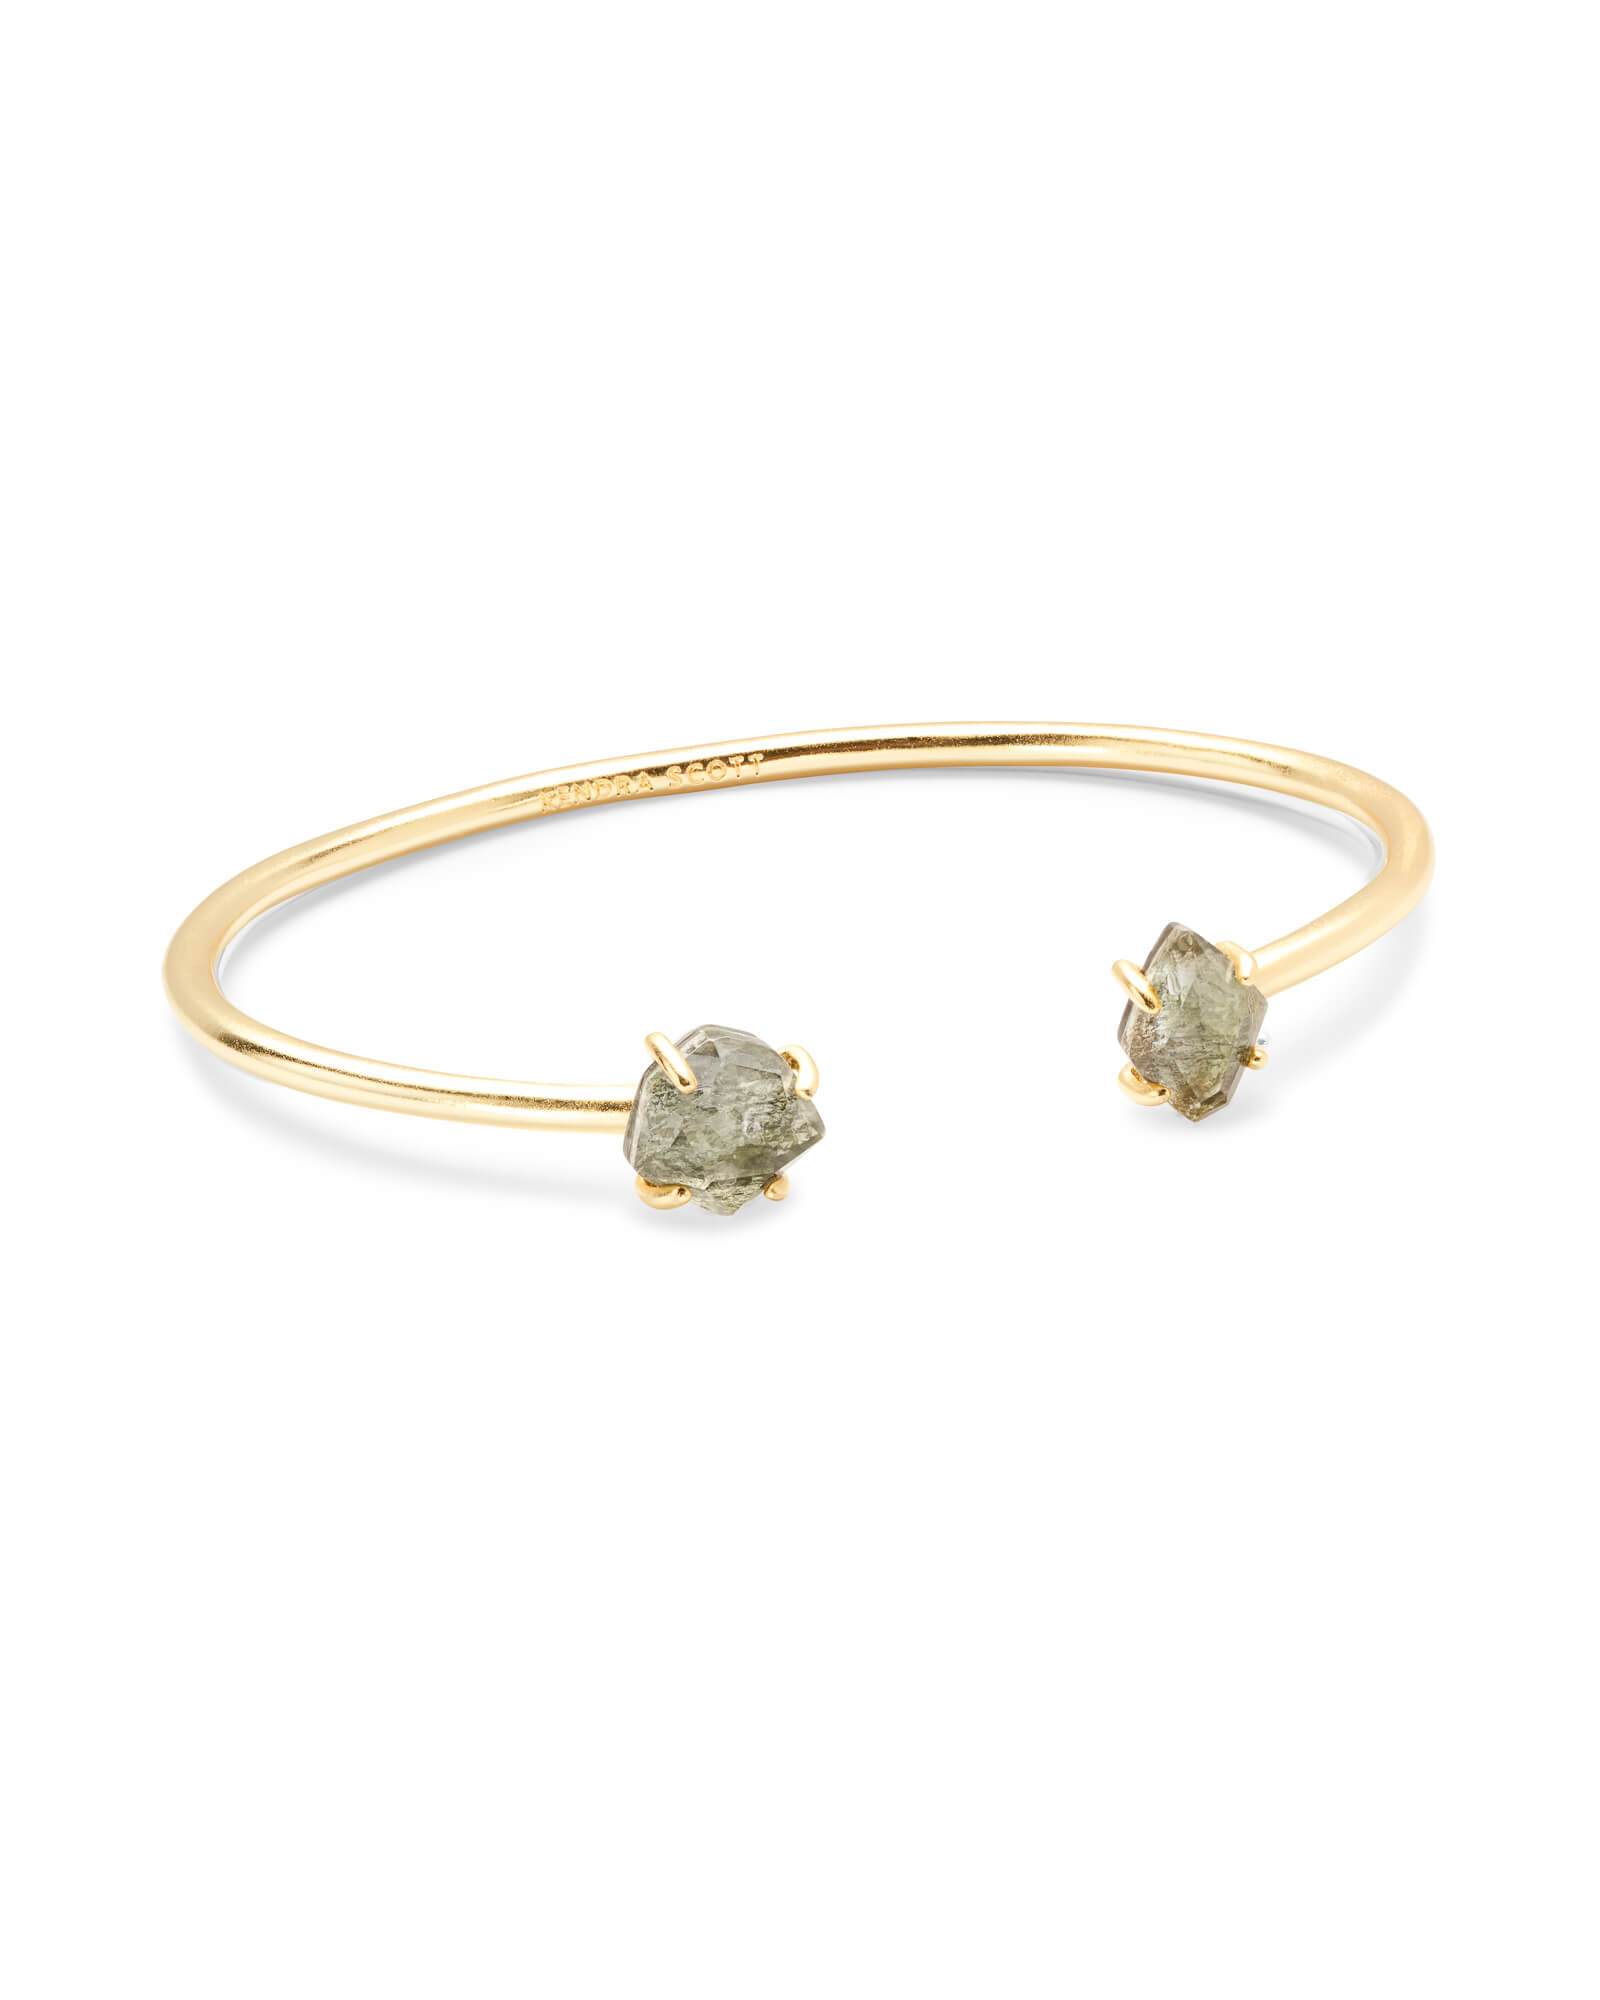 Merida Gold Pinch Cuff Bracelet in Sage Mica